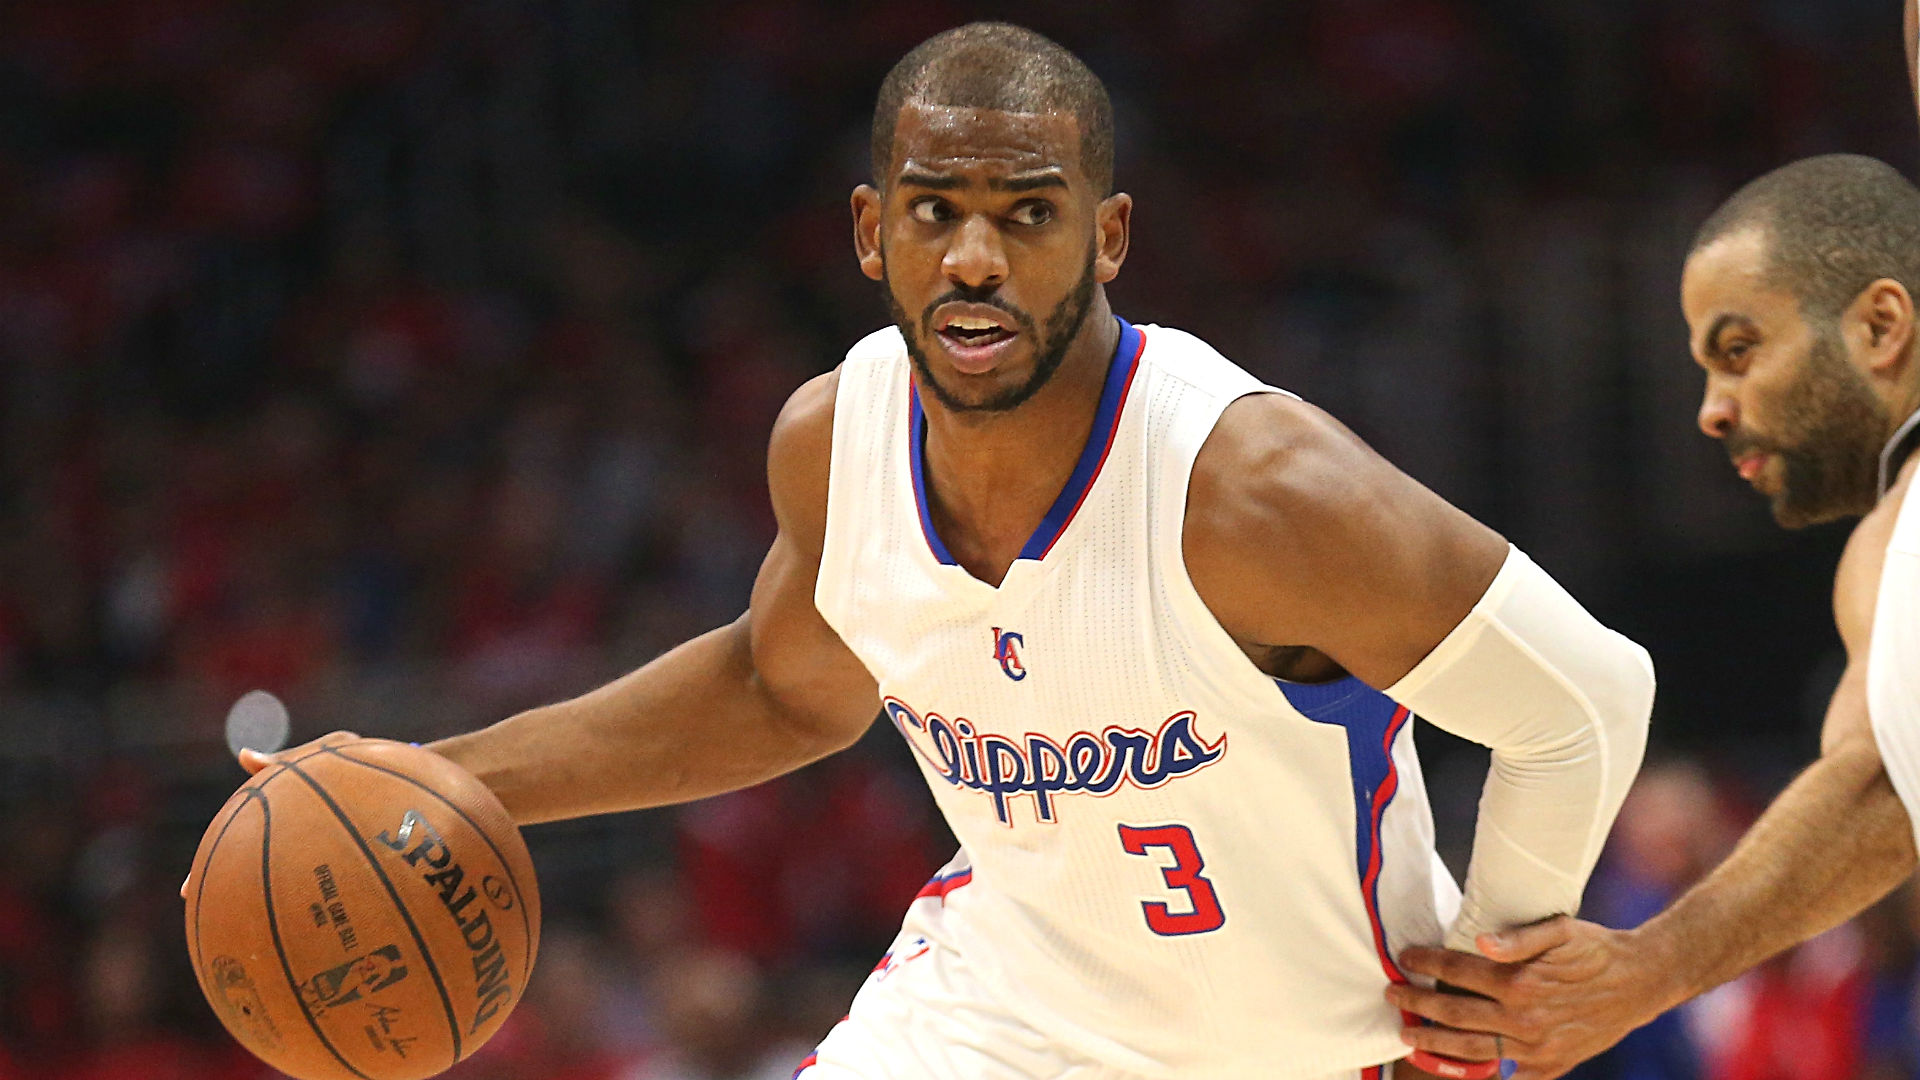 Chris Paul out for start of Clippers-Rockets series